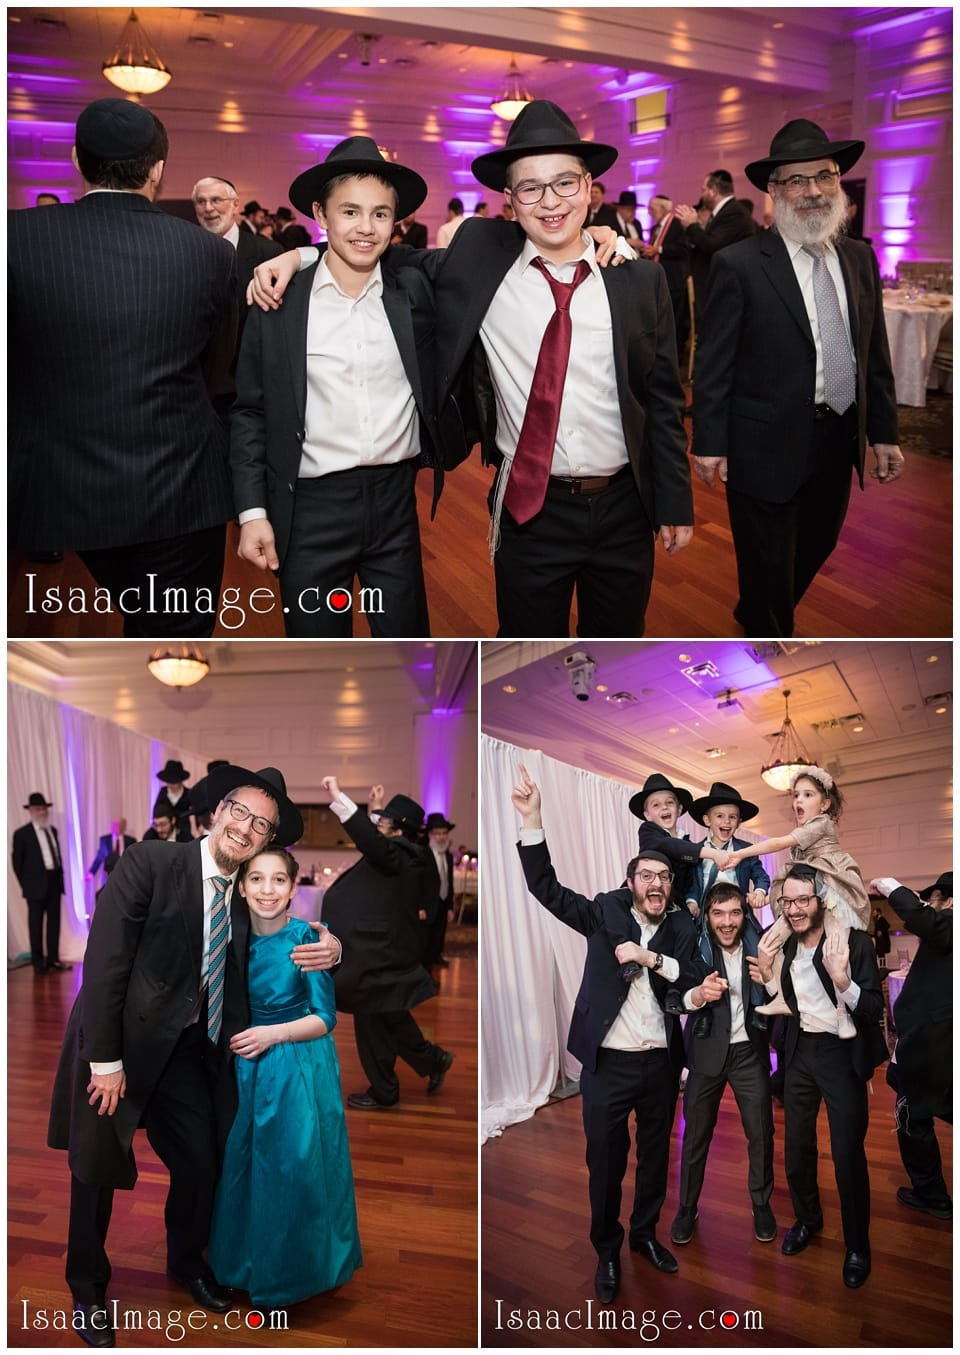 terrace banquet hall Chabad Wedding Bassie and Dovi_2100.jpg